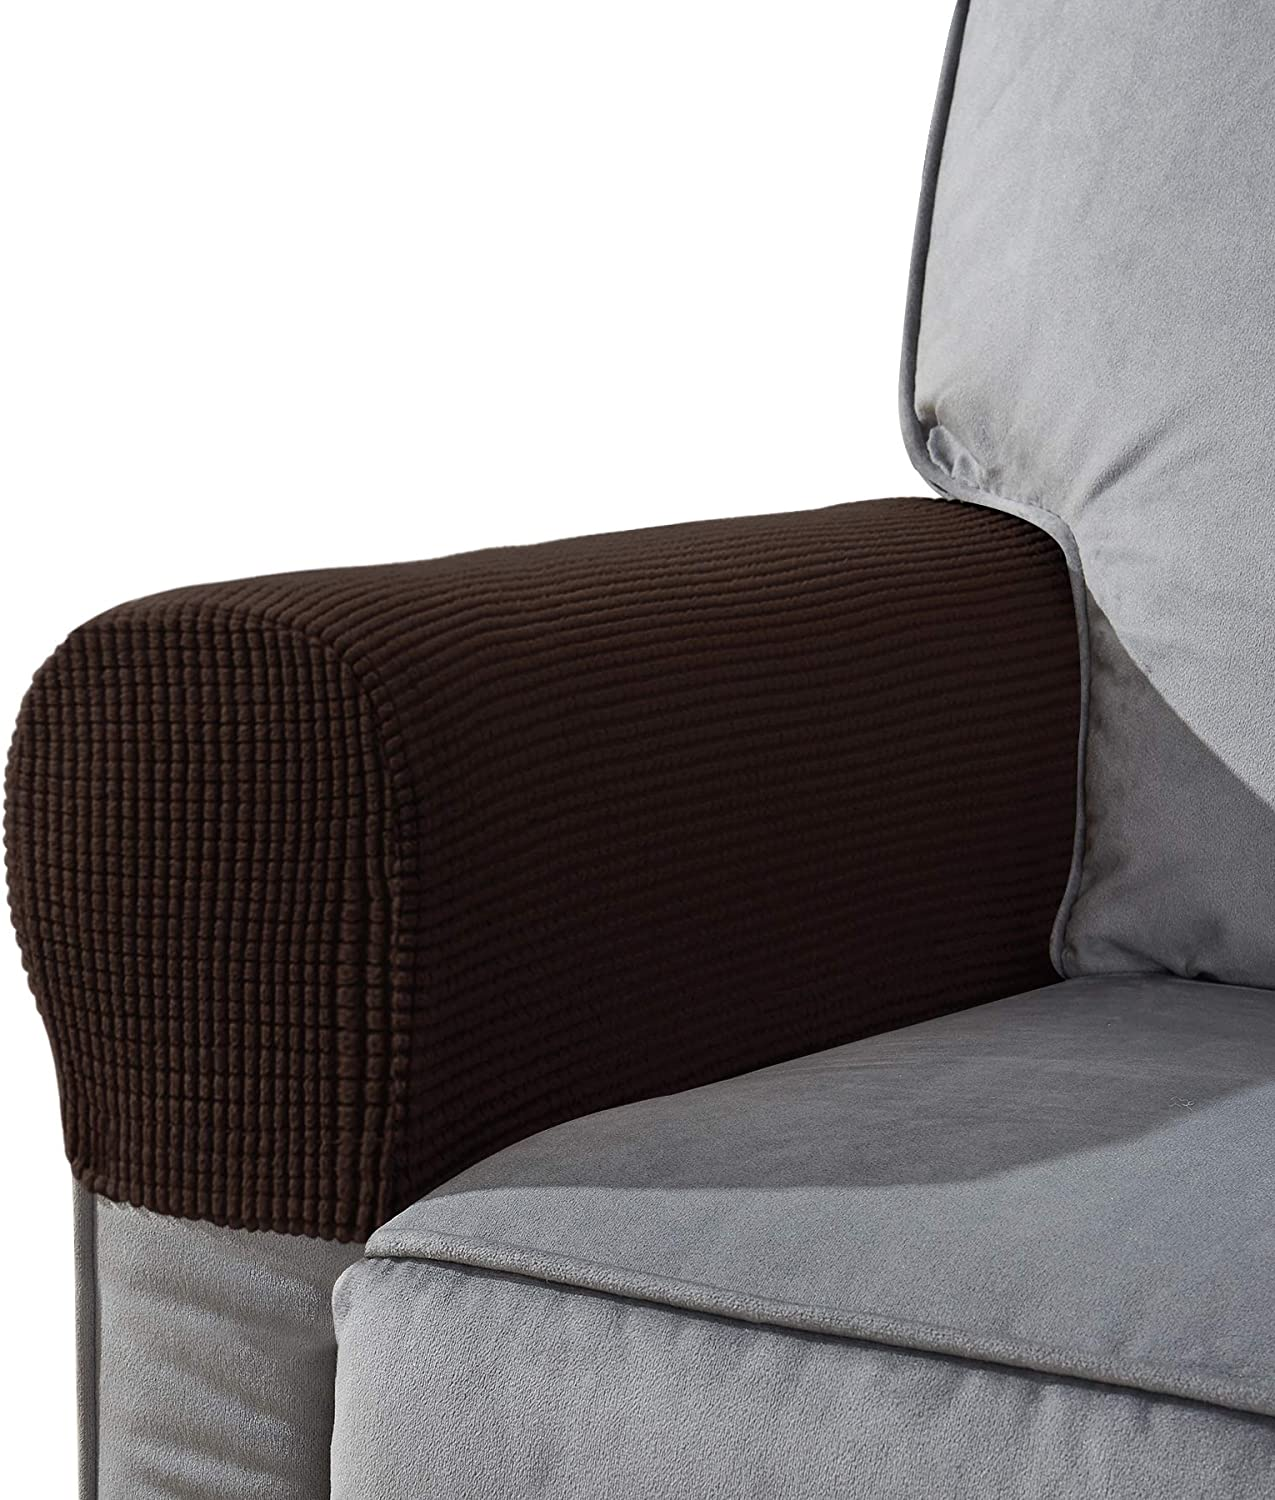 CHUN YI Set of 2 Stretch Polyester Sofa Armchair Armrest Covers Slipcovers Furniture Protector Spandex Fabric Jacquard Anti-Stain Washable Couch Arm Cover Slipcover (Armrest, Chocolate)